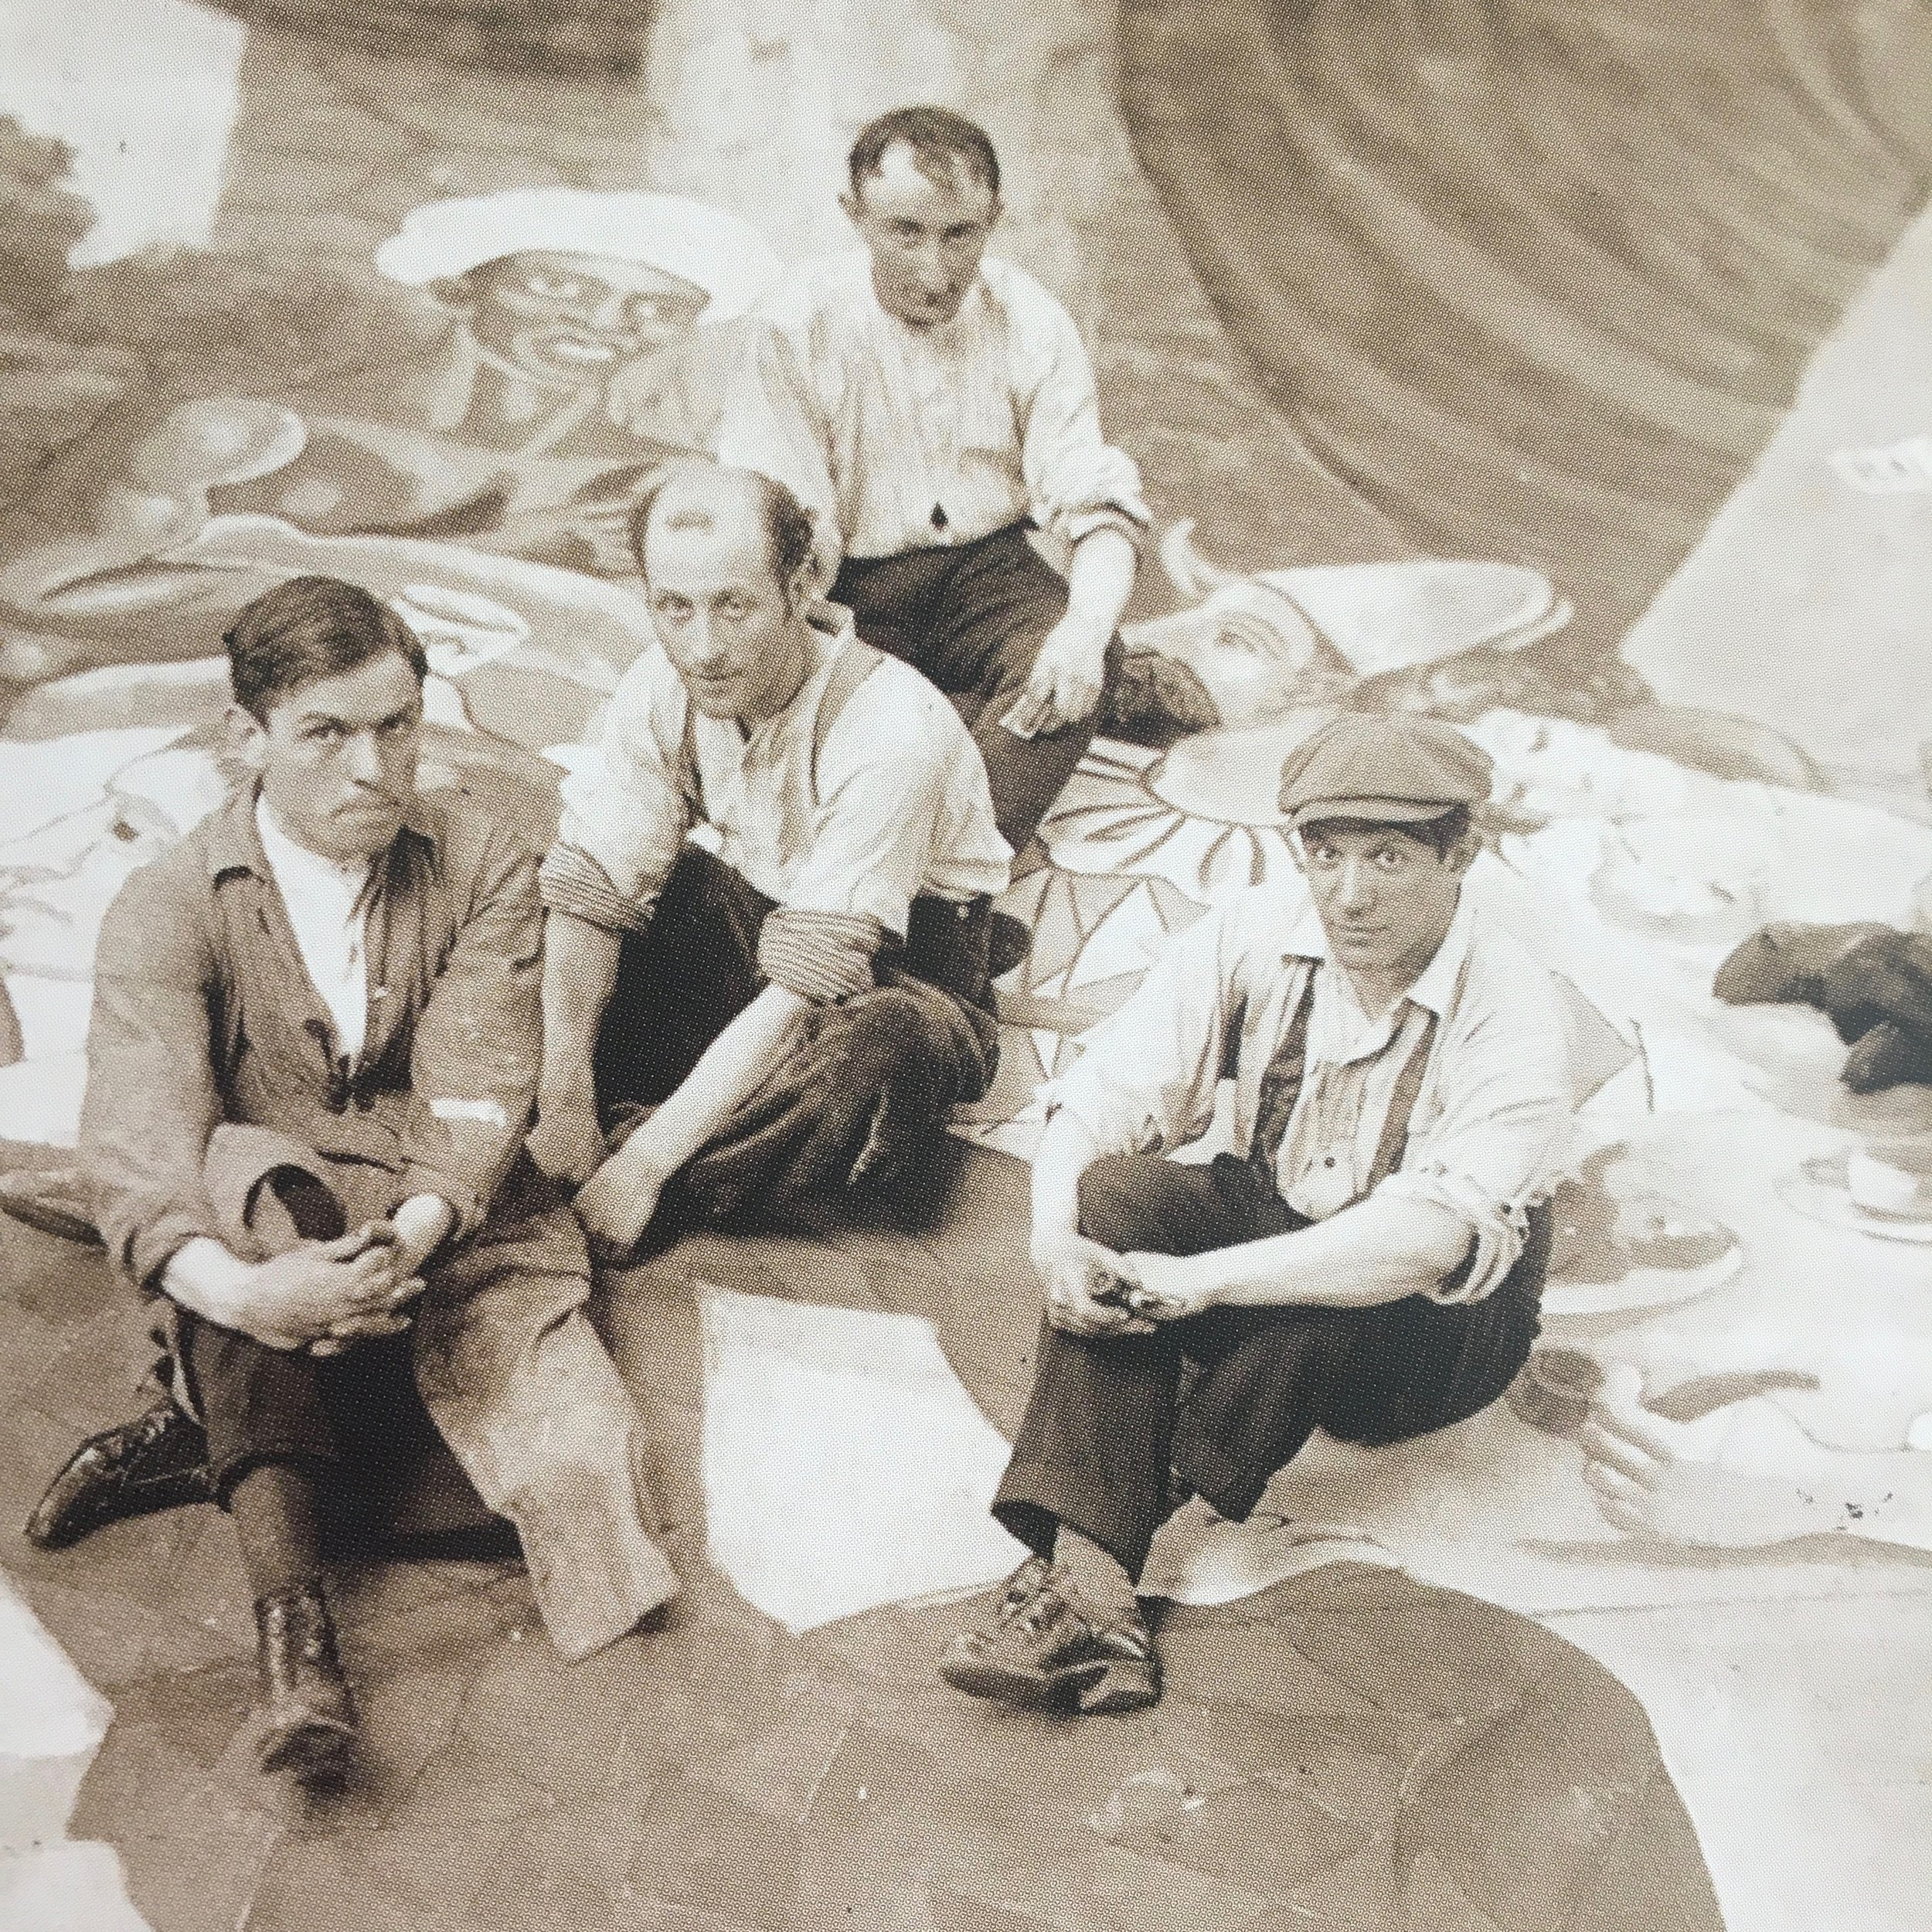 Picasso and his assistants sitting at work on the curtain of the ballet Parade in 1917